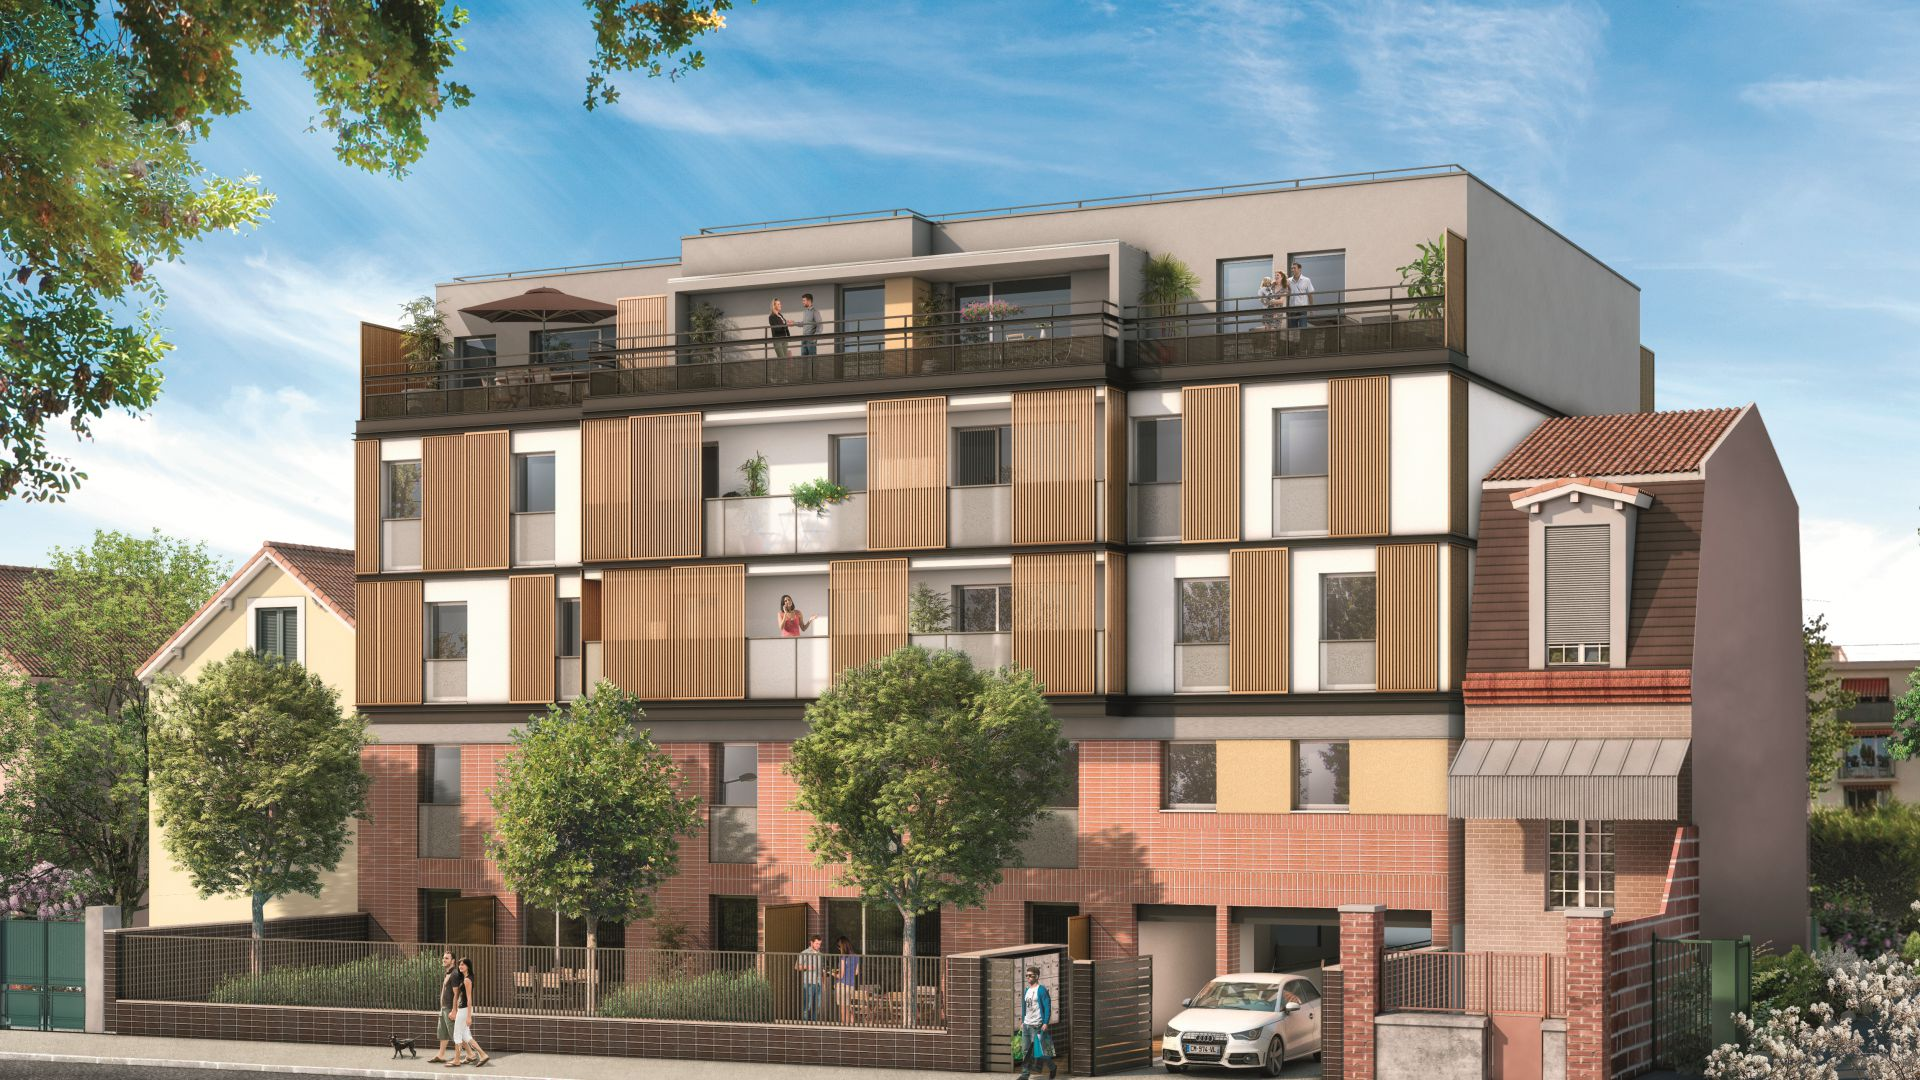 Residence poincare green city immobilier for Residence immobilier